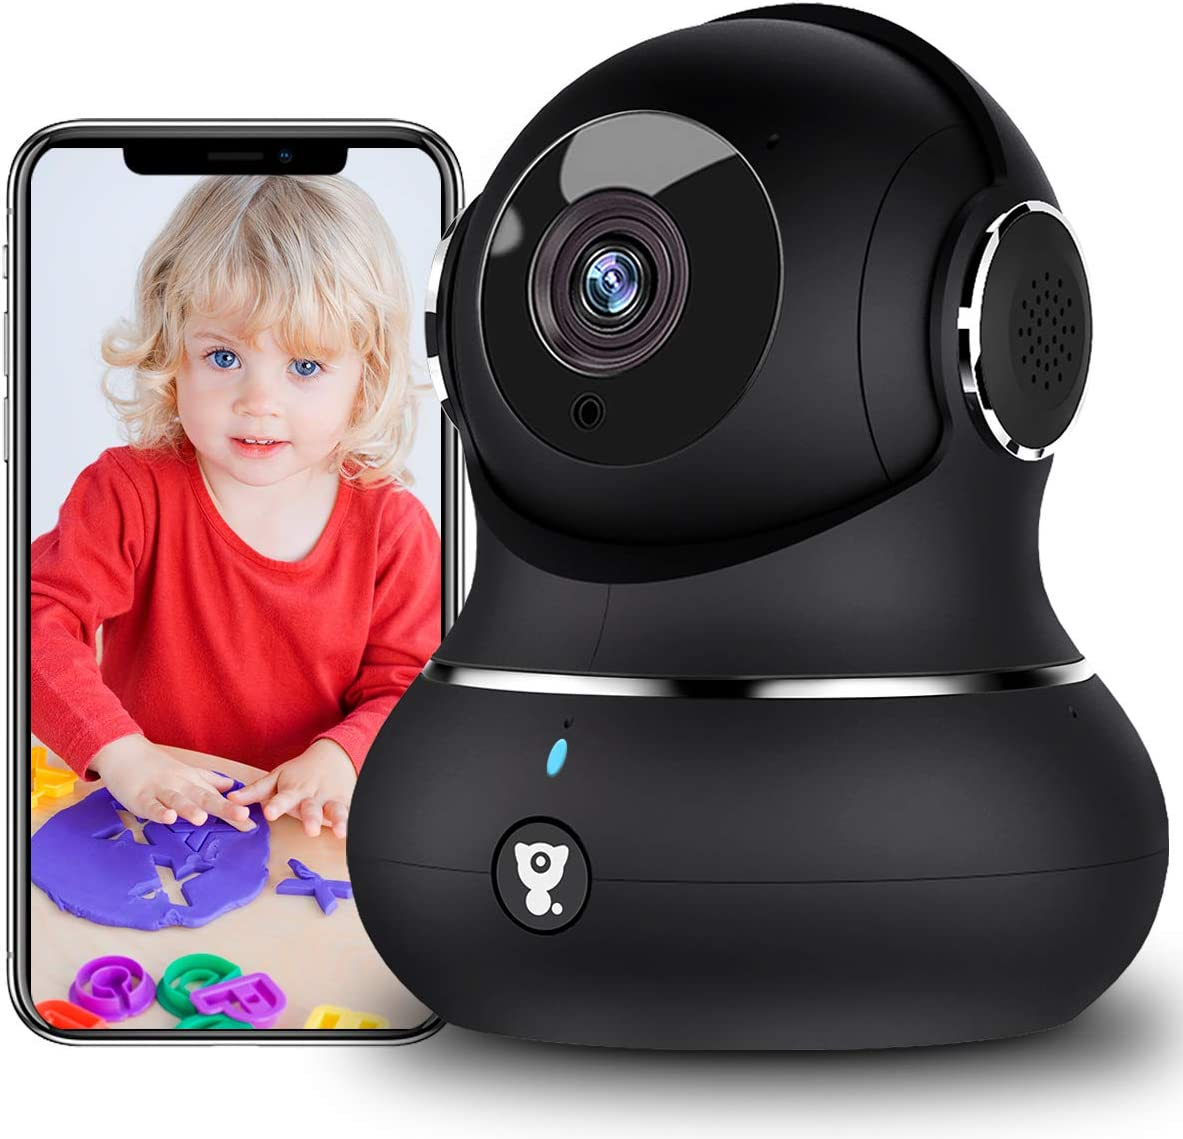 Home Security Camera Indoor, 1080P Littlelf WiFi Indoor Camera with Phone App for Baby/Pet/Elder, Dog Camera with Motion Detection,2-Way Audio,Works with Alexa, 2021 Newest Security Camera for Home